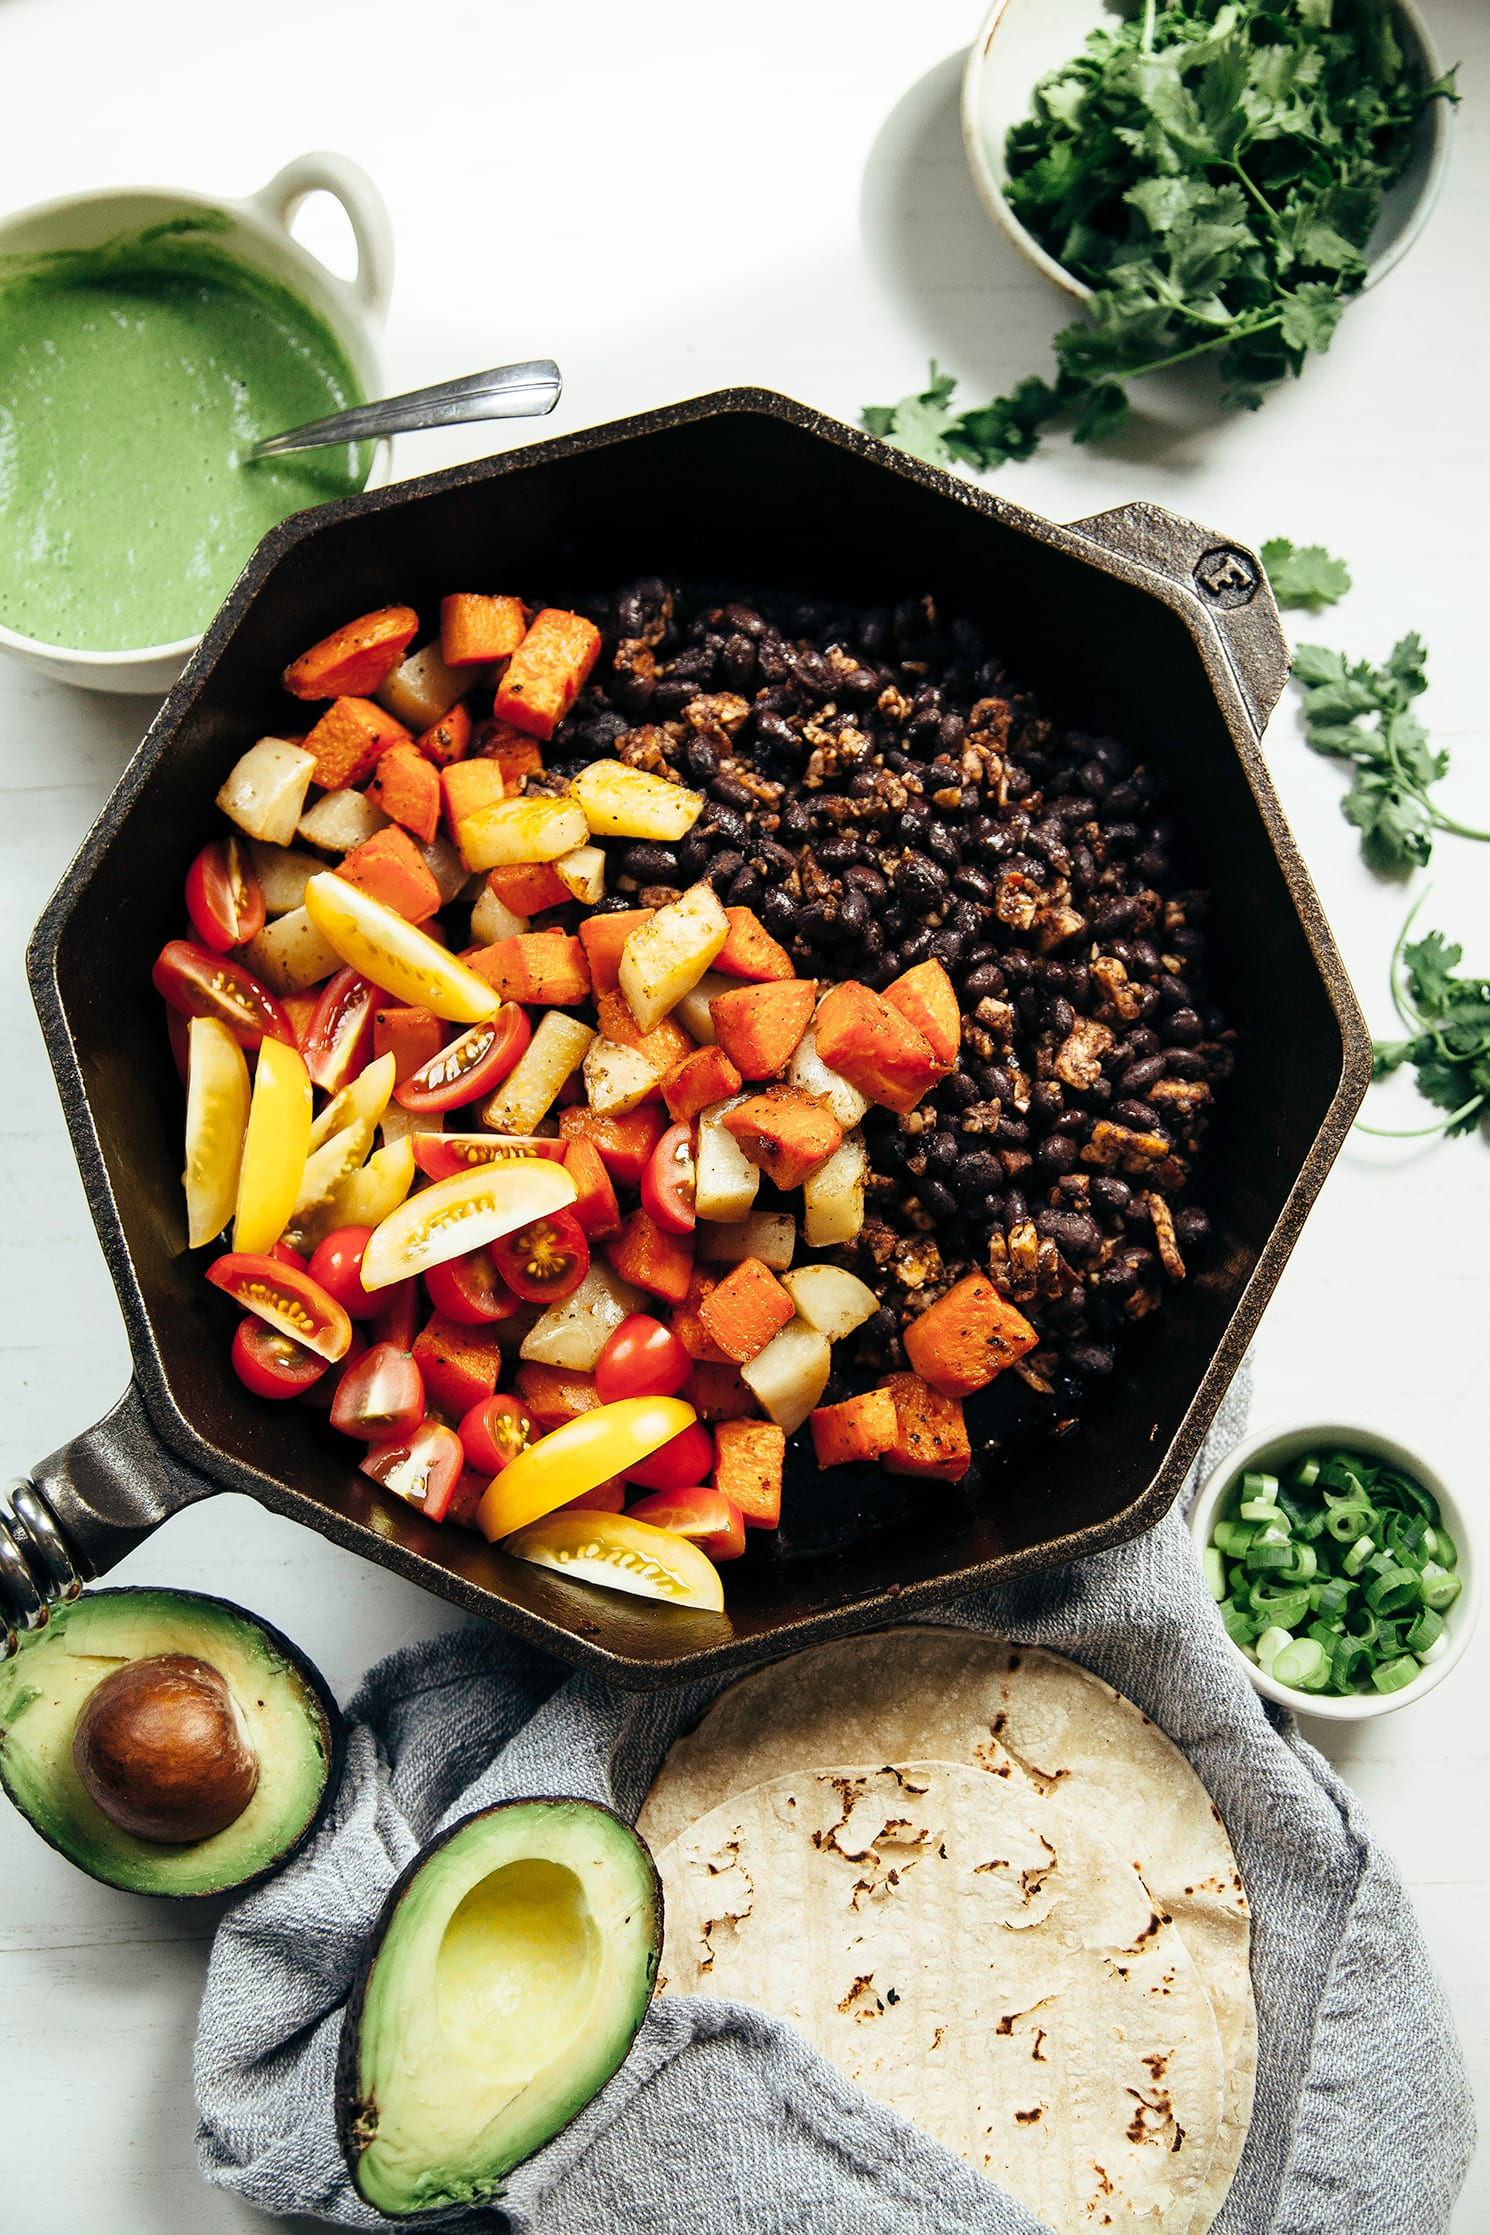 cozy & spicy vegan breakfast skillet w/ cilantro jalapeño sauce - The First Mess